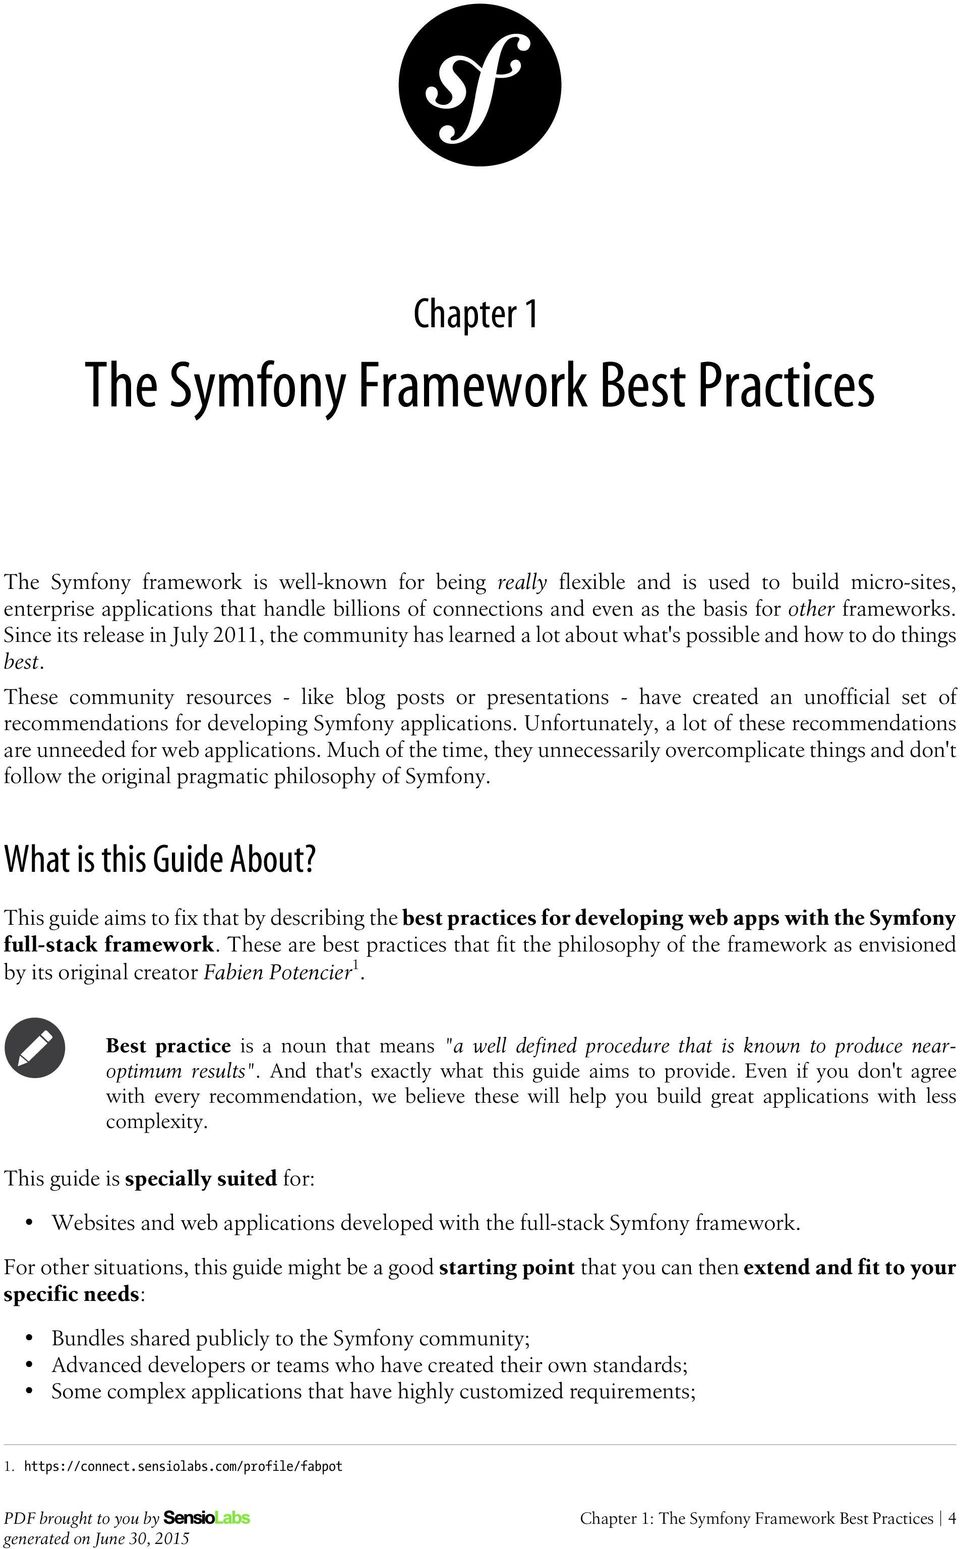 These community resources - like blog posts or presentations - have created an unofficial set of recommendations for developing Symfony applications.